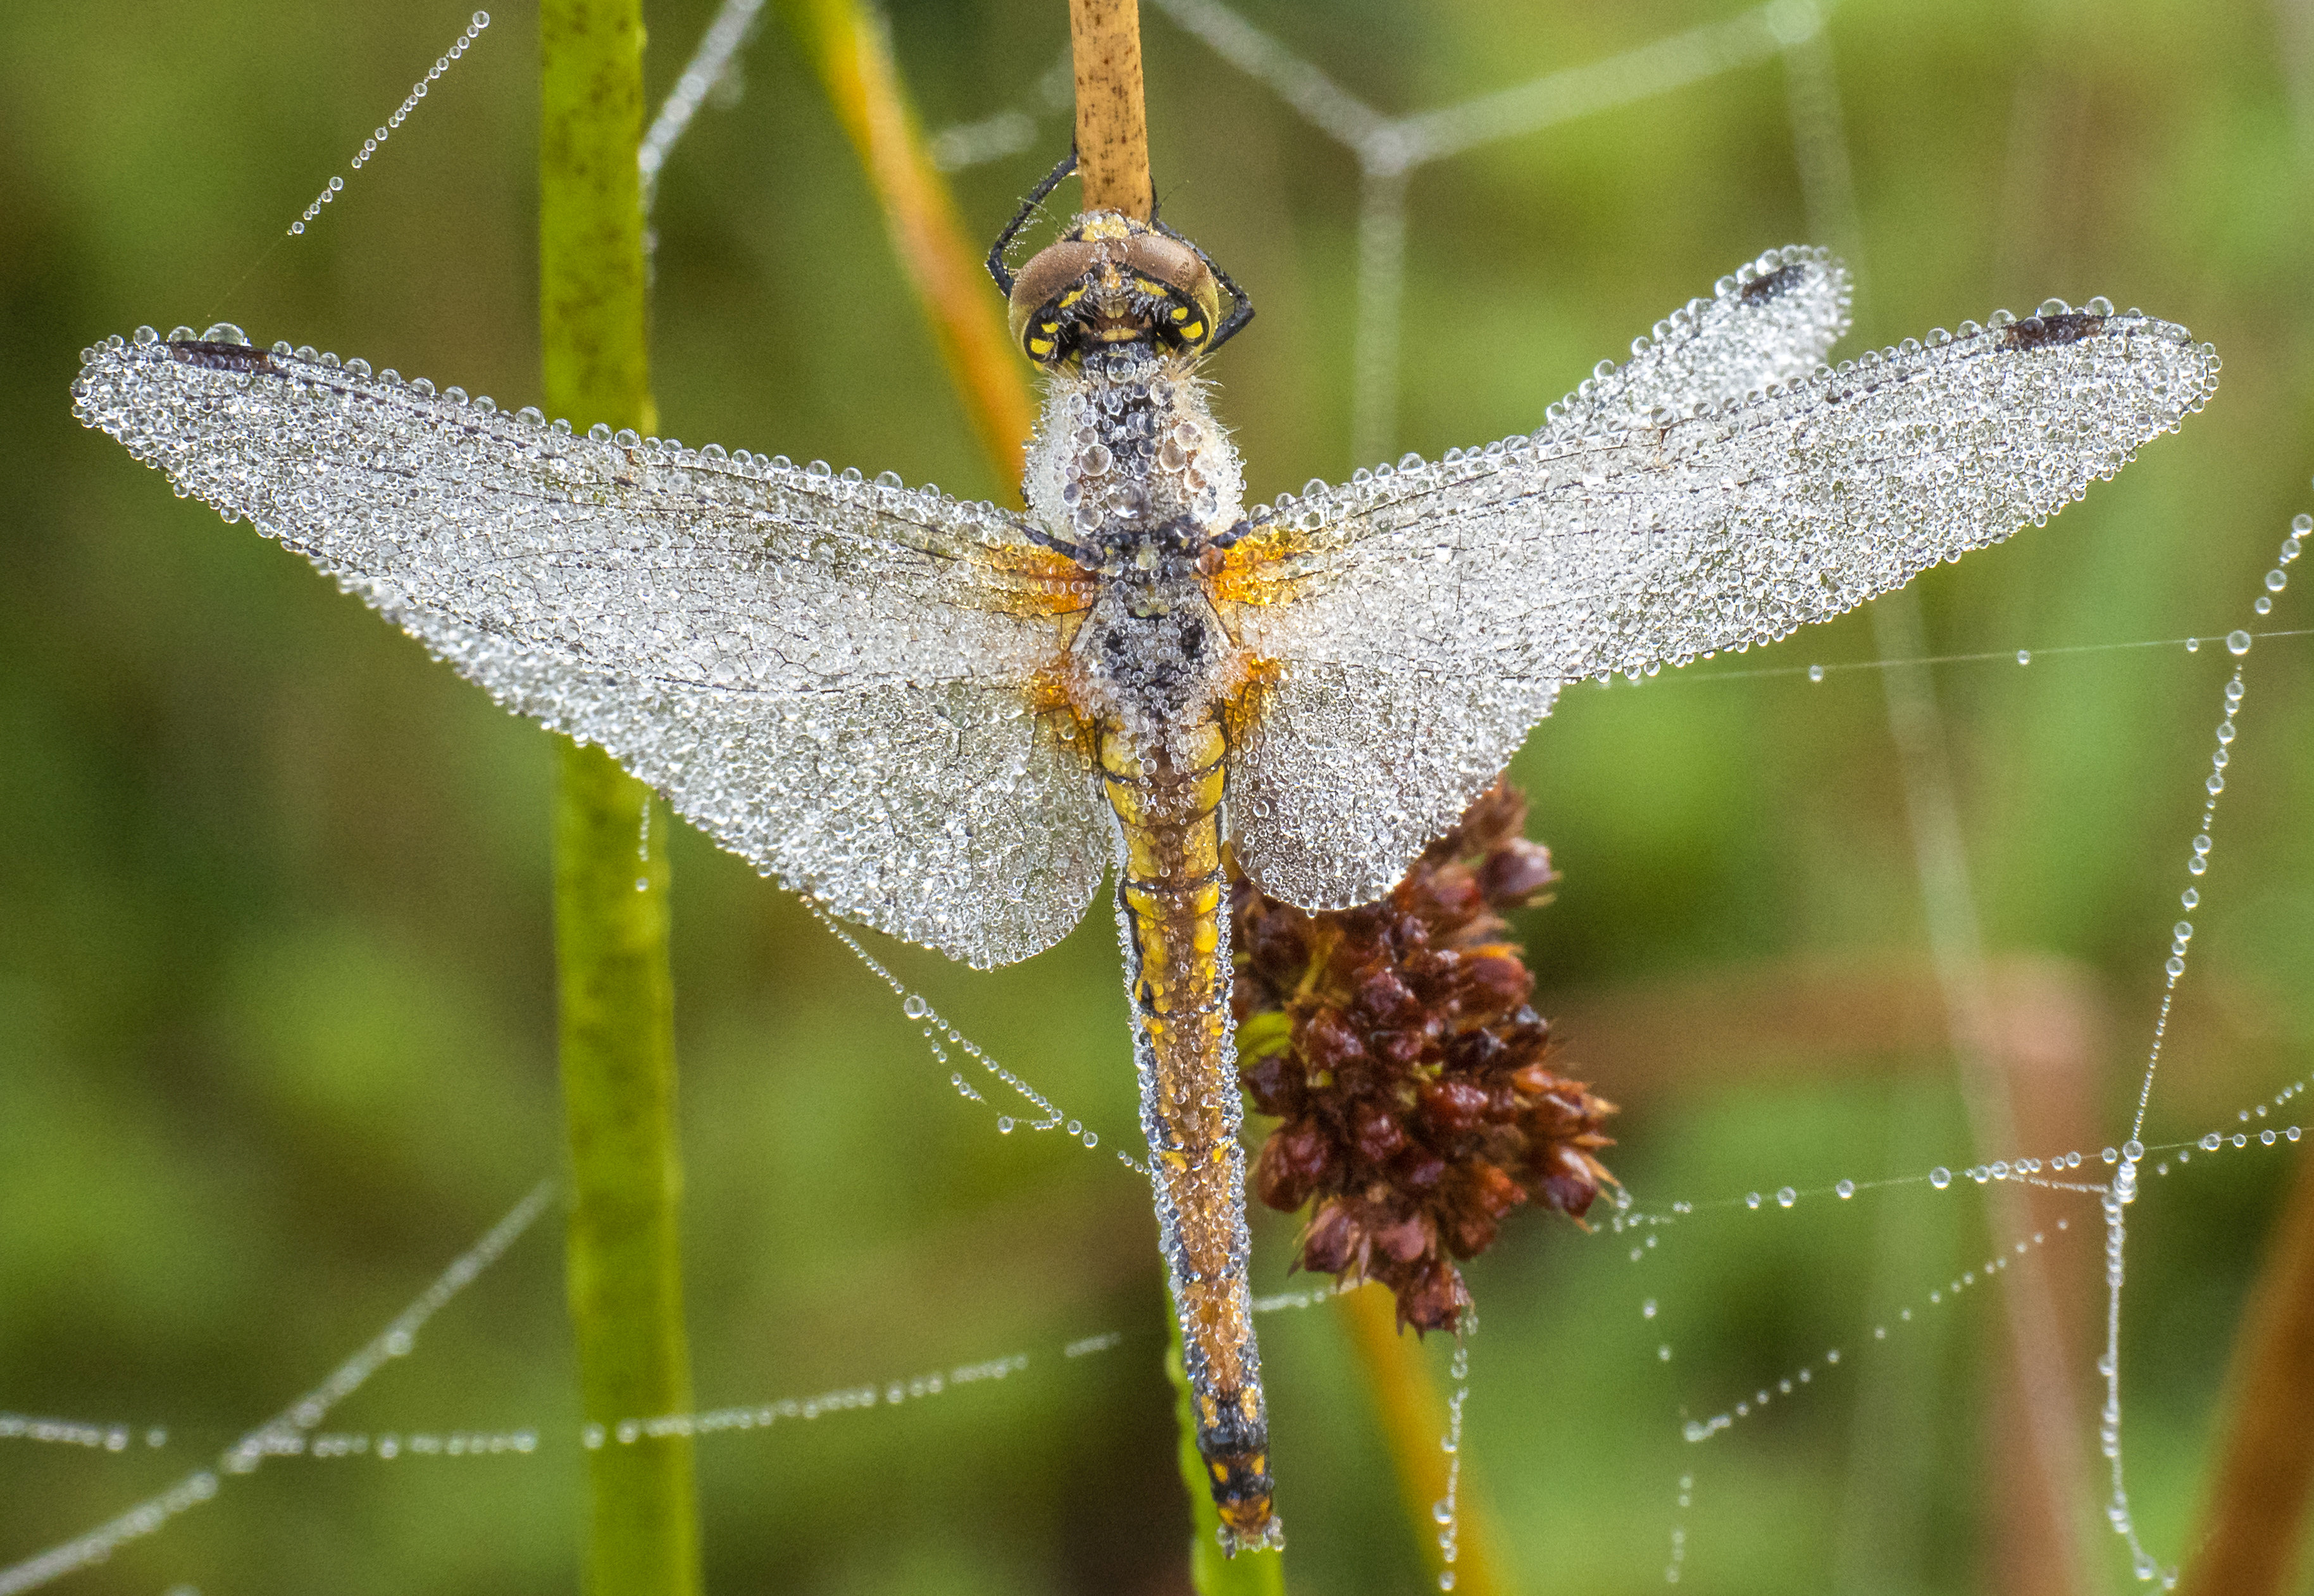 Wildlife photographer captures images of dragonflies covered in dew: It 'clung to their bodies like jewels'